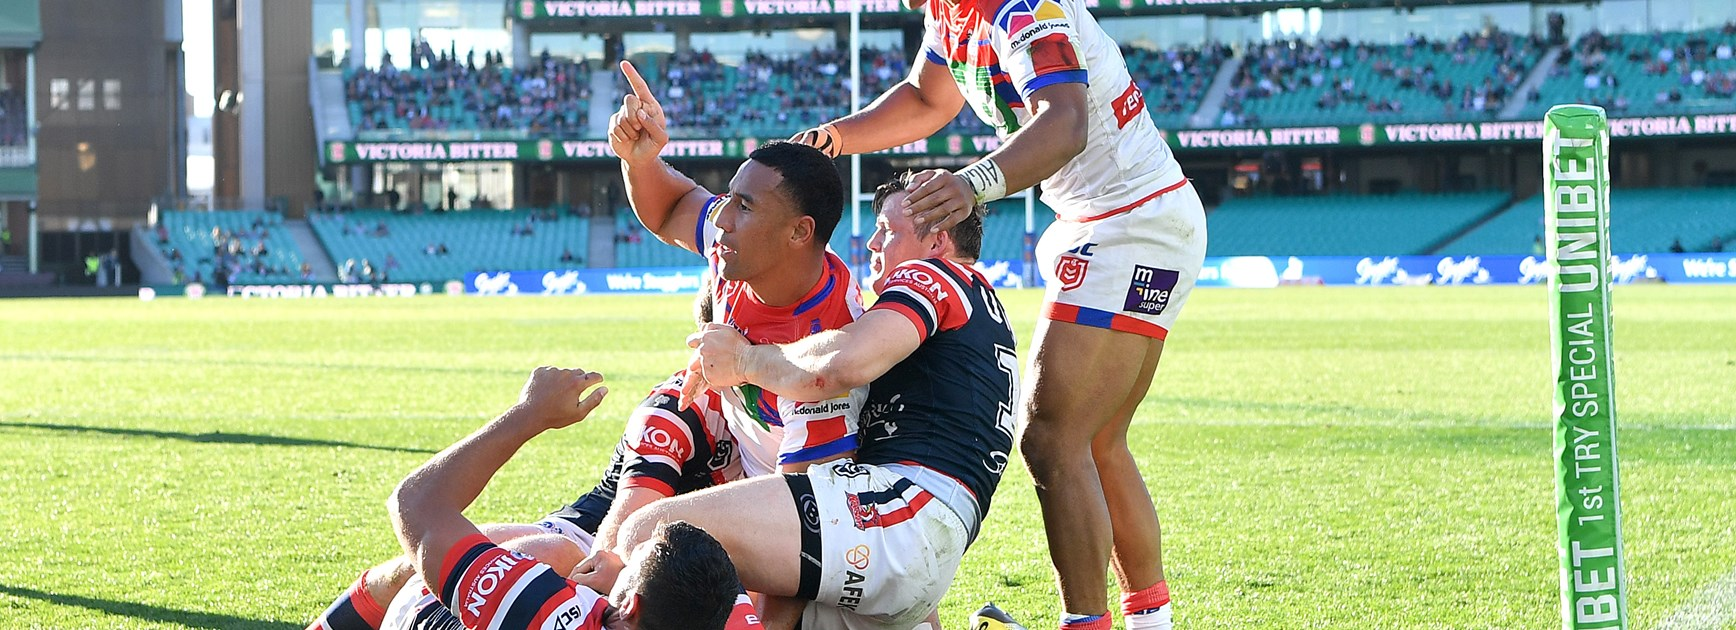 Thankful Moga thrilled to be back in NRL arena